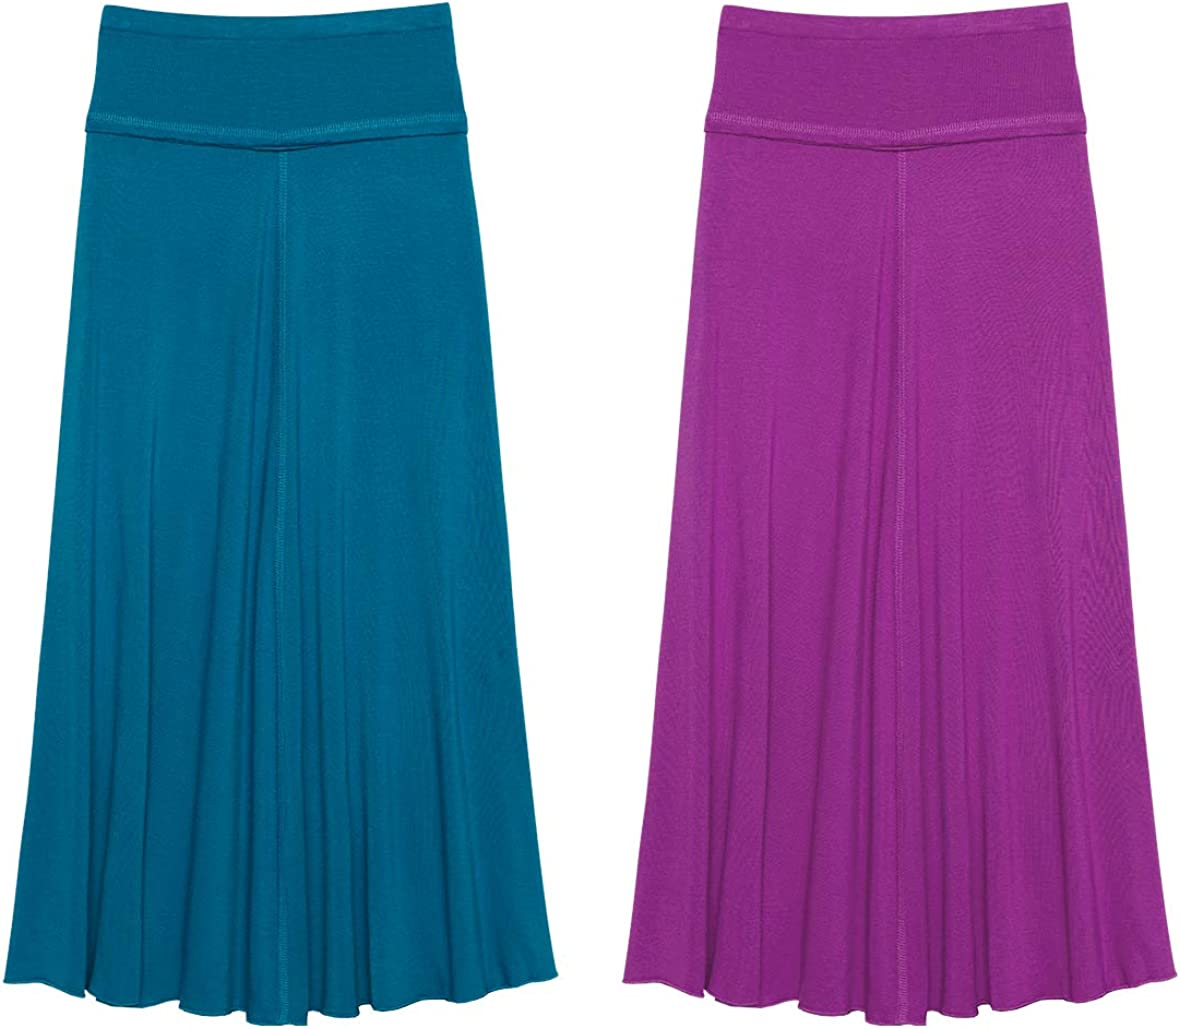 KIDPIK 2-Pack Maxi Skirts for Girls 4 Years & Up - Comfy Modest Clothing - 2 Colors/Skirt Set: Clothing